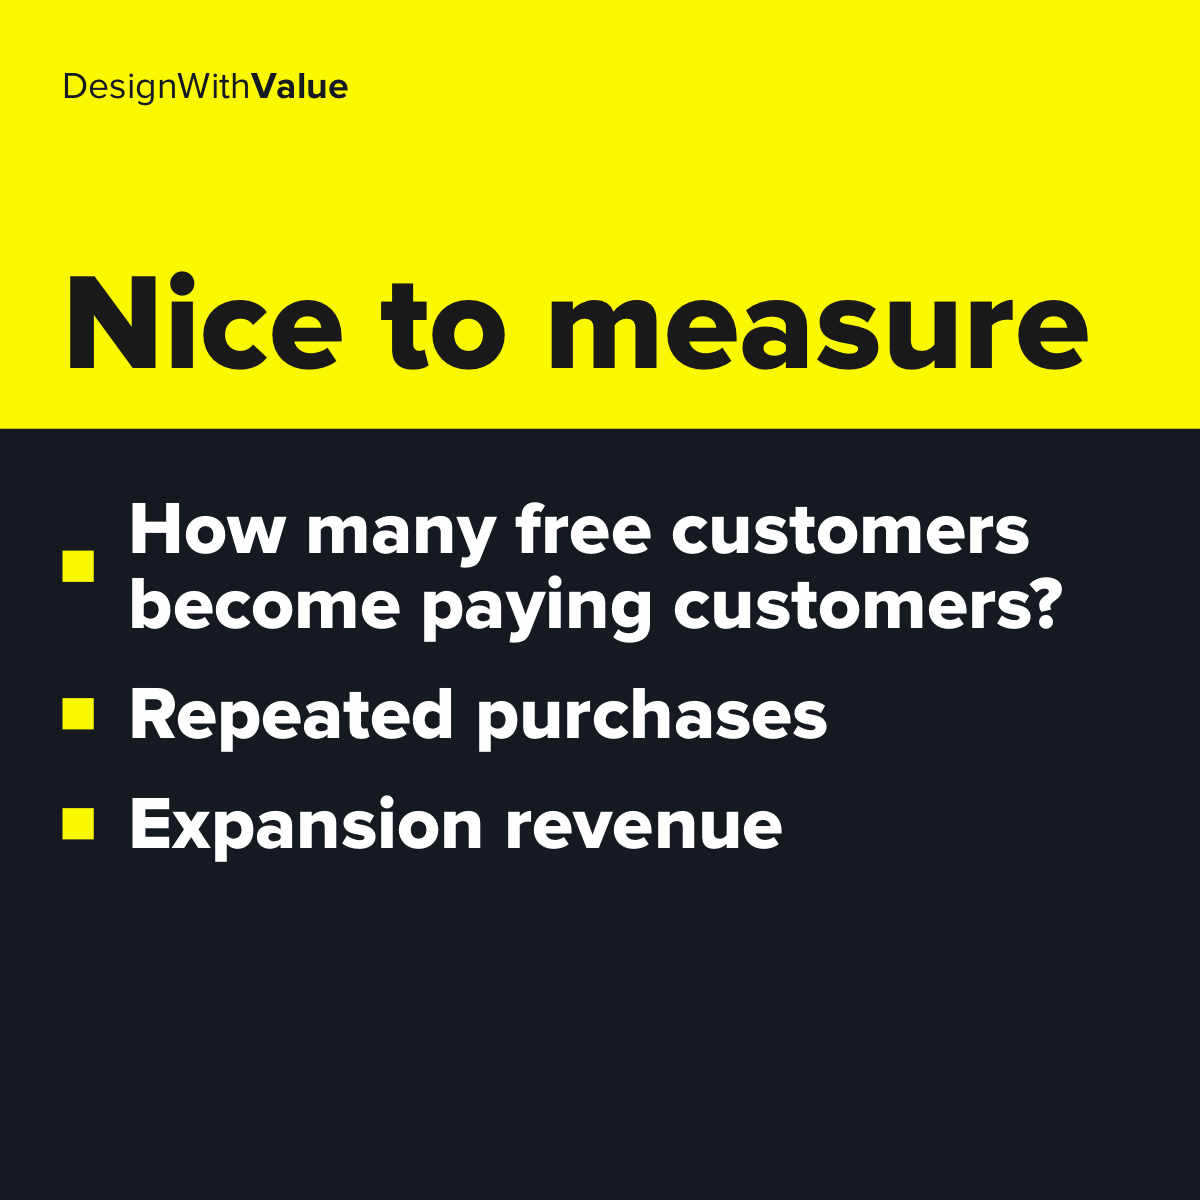 Nice to measure metrics: How many free customers become paying customers, repeated purchases, expansion revenue.